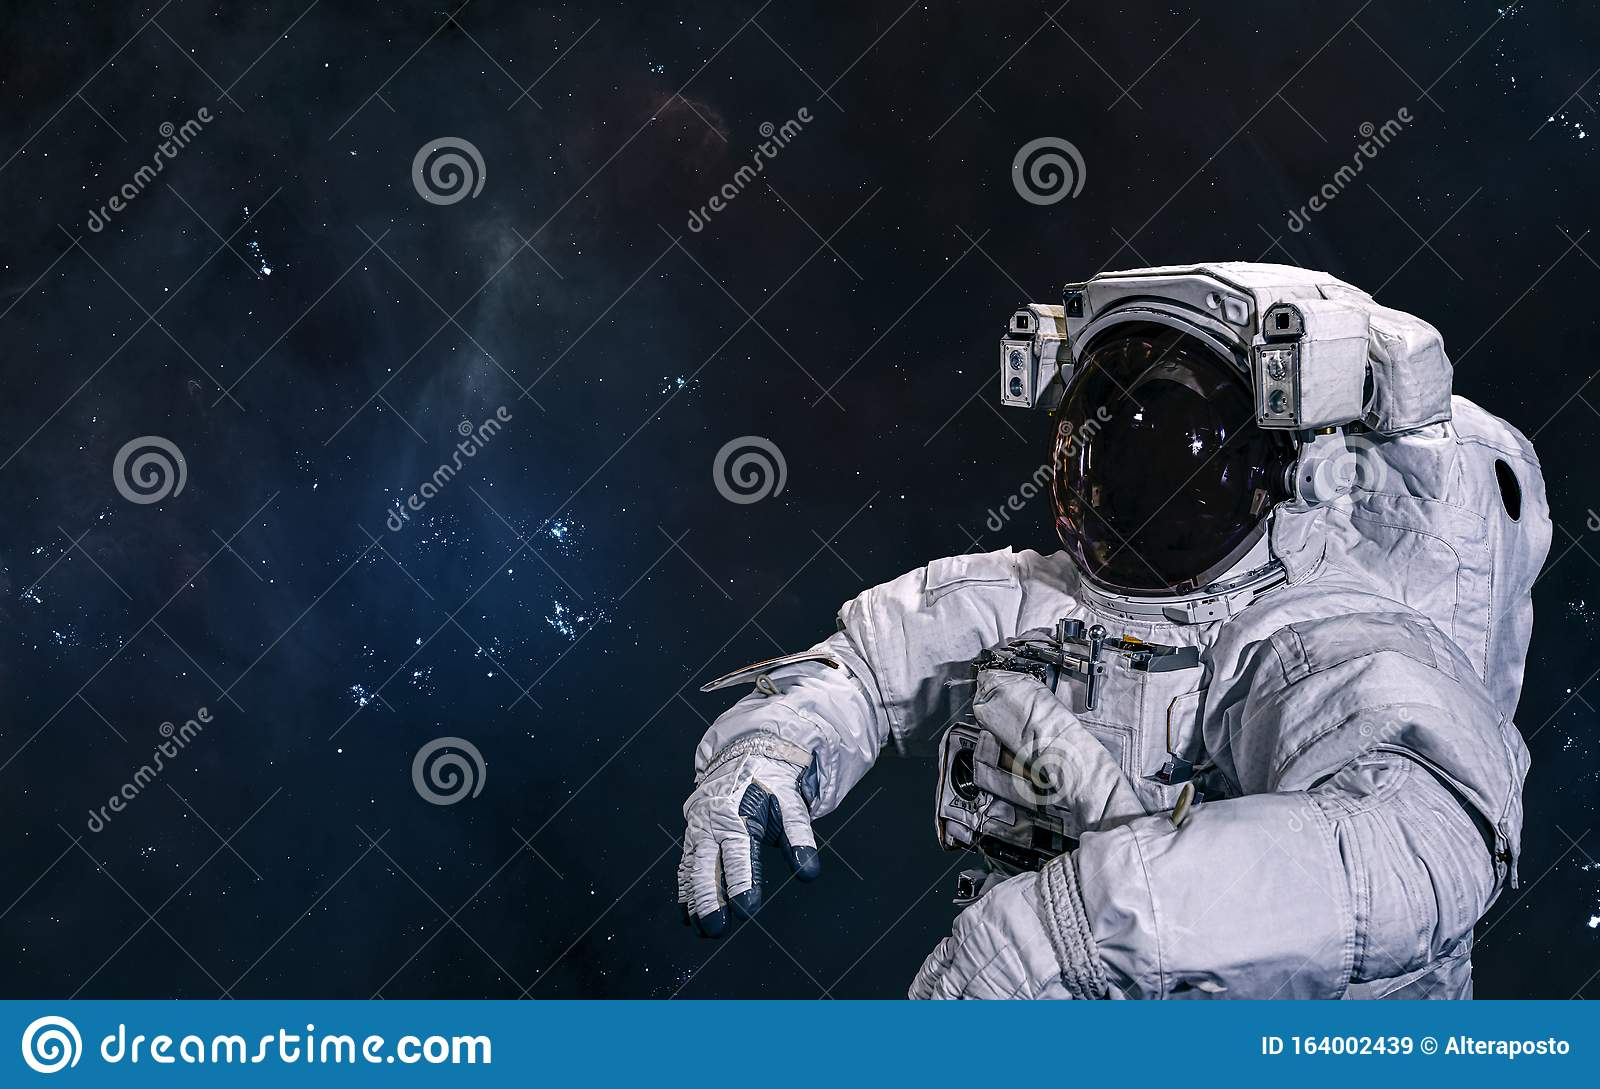 Astronaut In Outer Space Science Fiction Stock Image